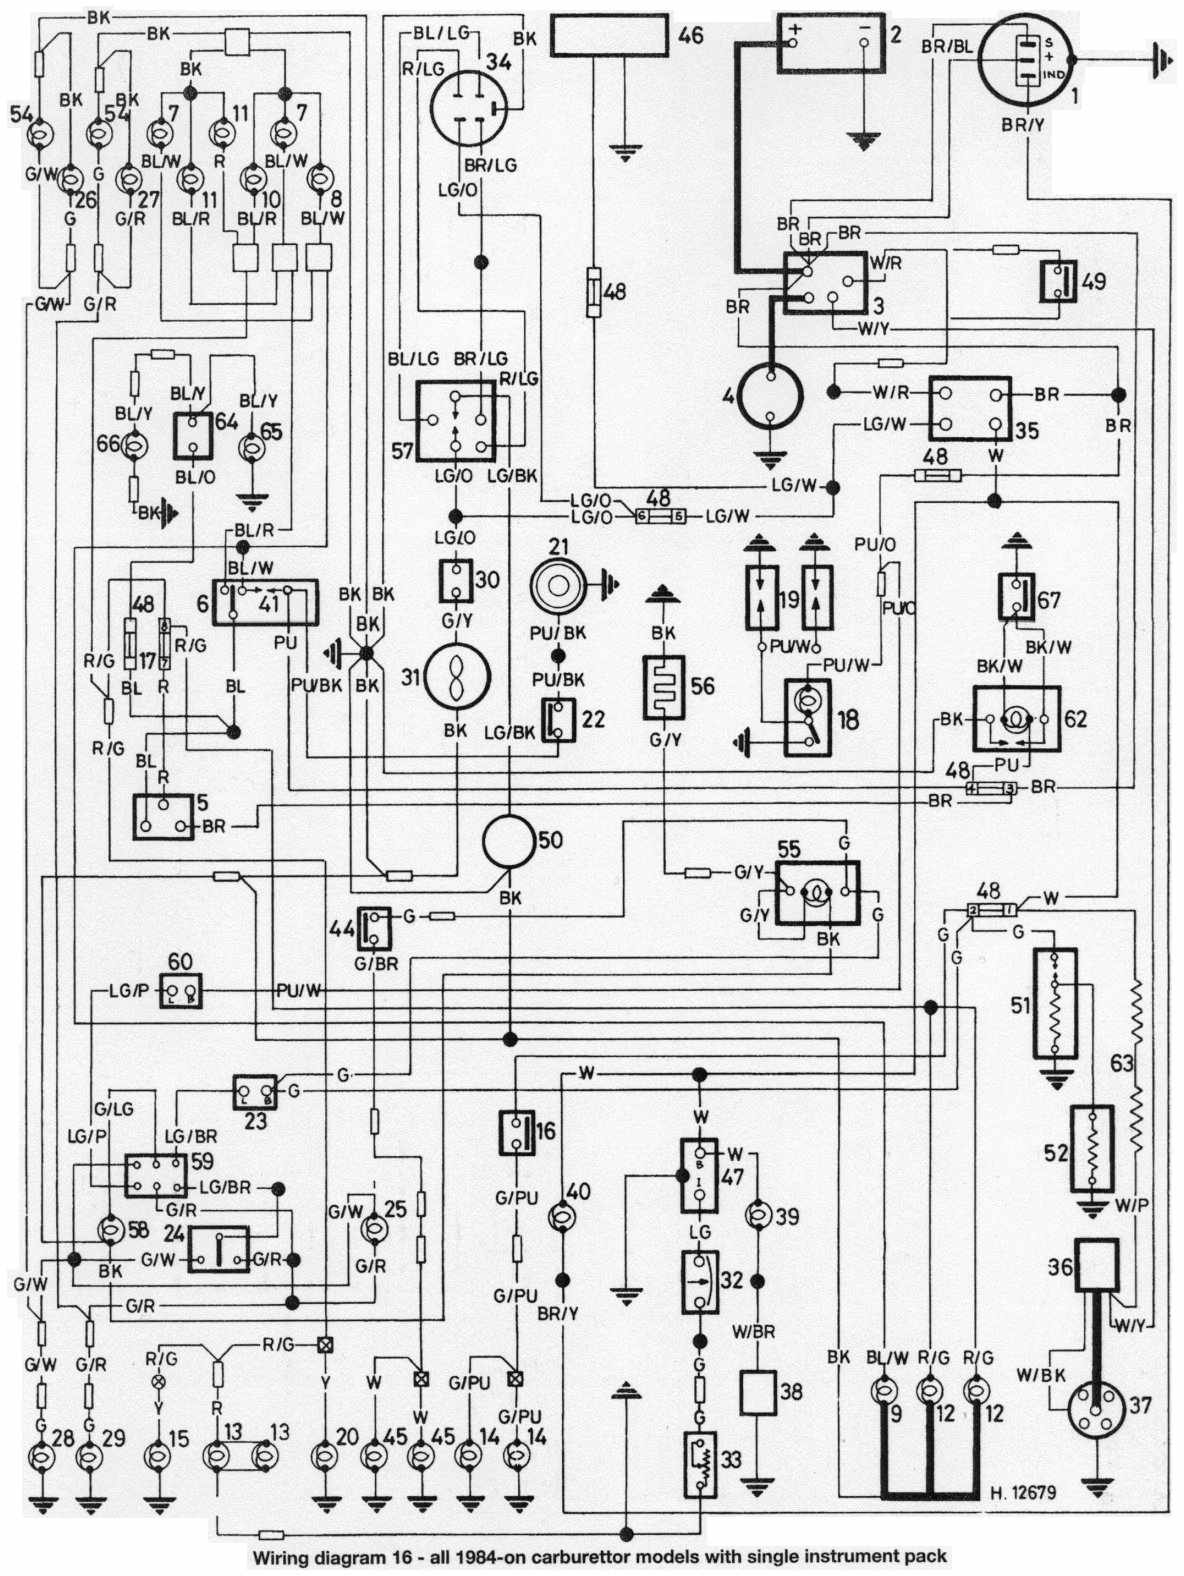 medium resolution of 1985 austin mini wiring diagram wiring diagram fuse box in daewoo matiz